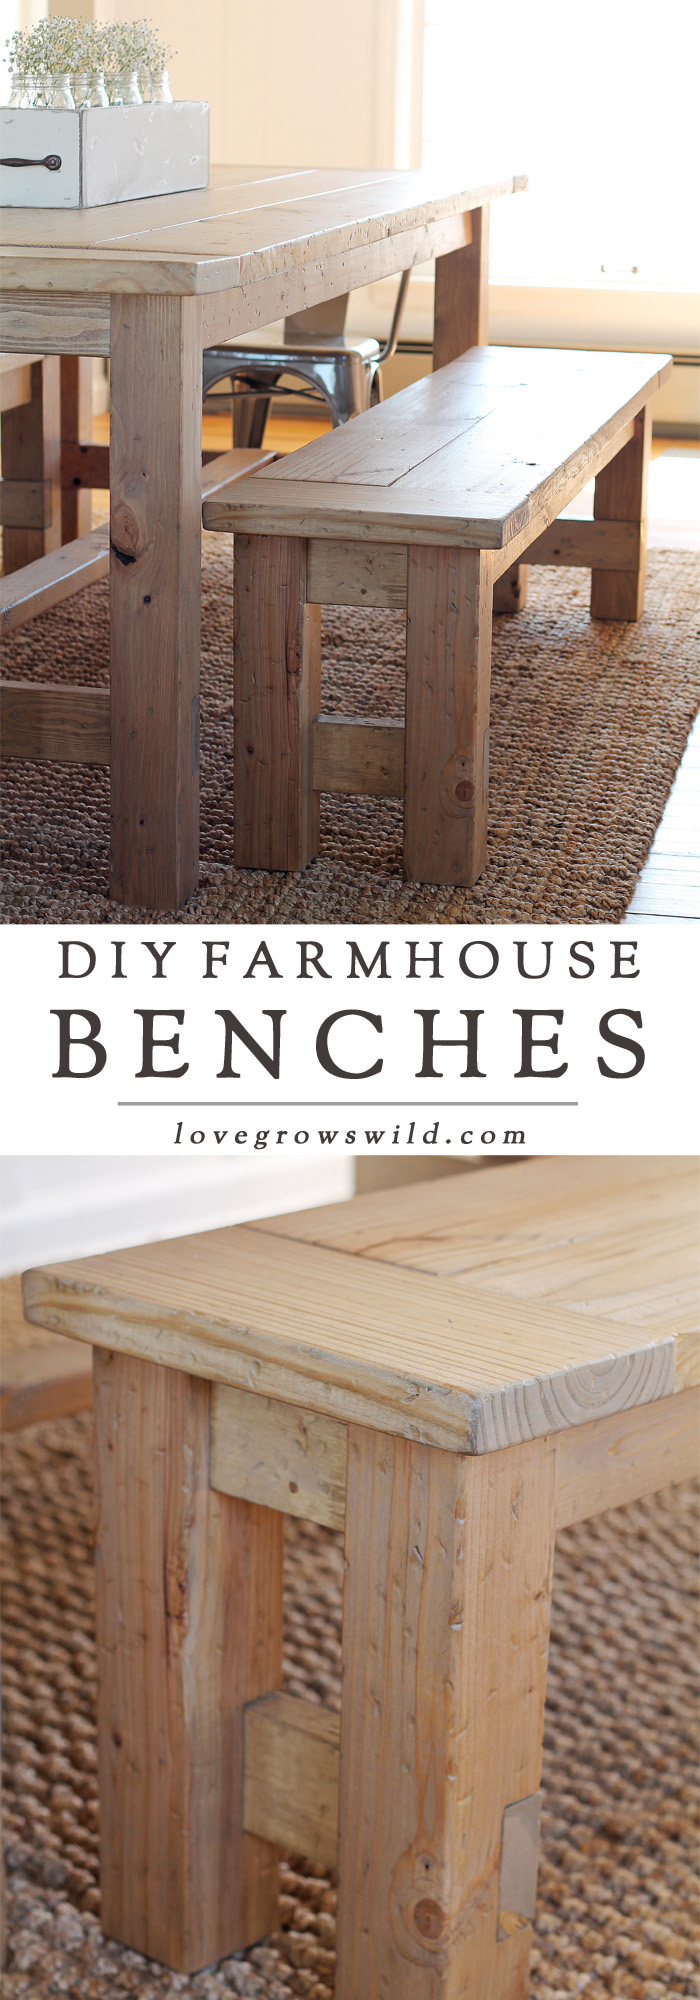 Learn How To Build An Easy DIY Farmhouse Bench   Perfect For Saving Space  In A